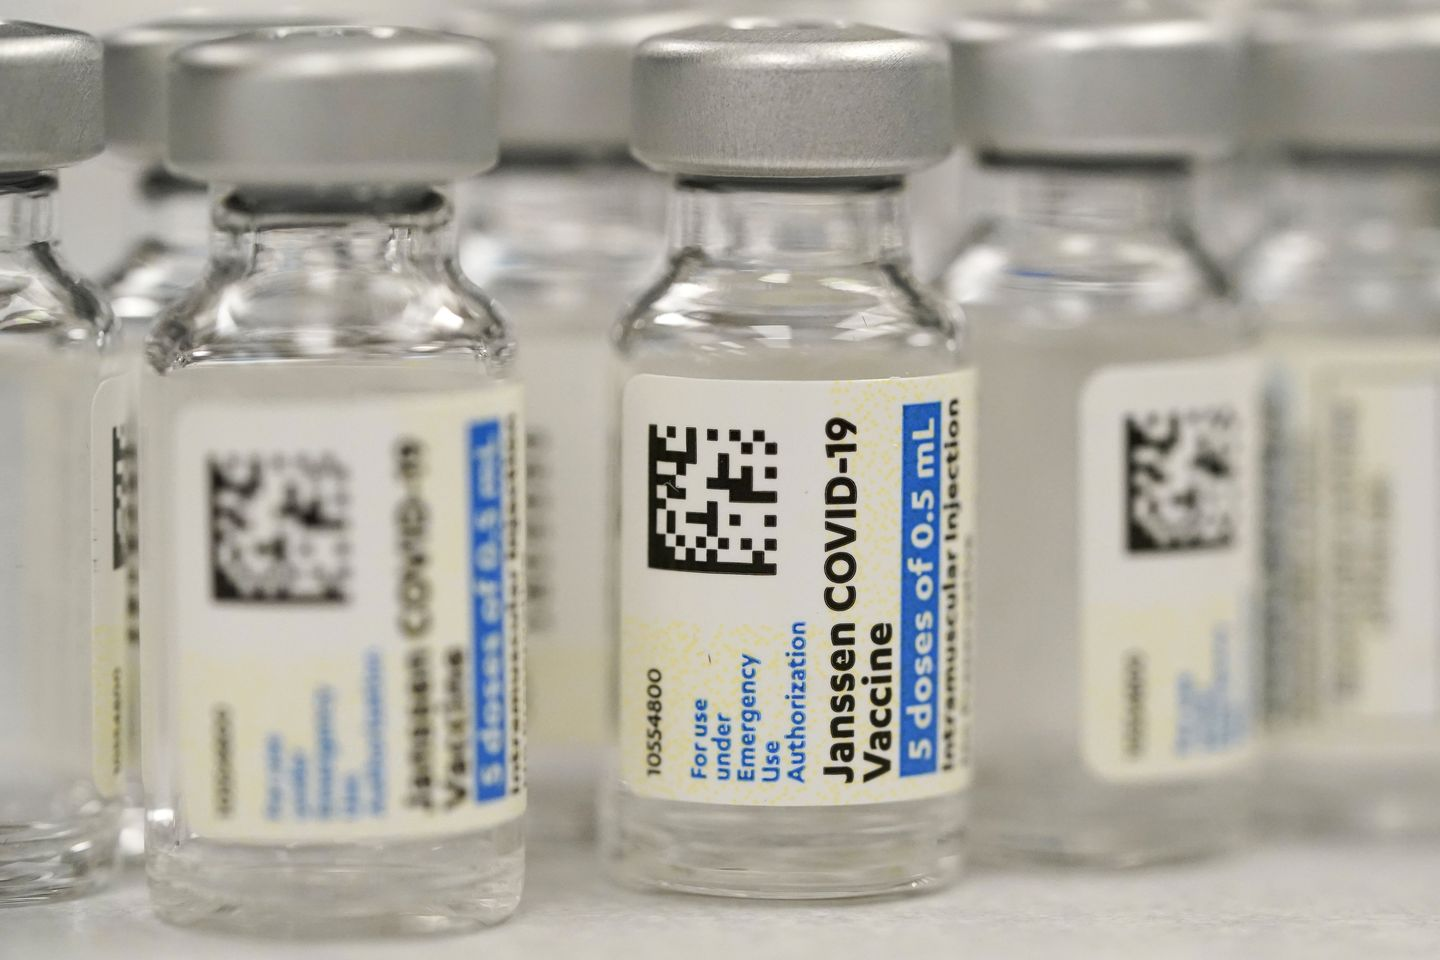 FDA clears release of J&J vaccine from troubled Baltimore factory